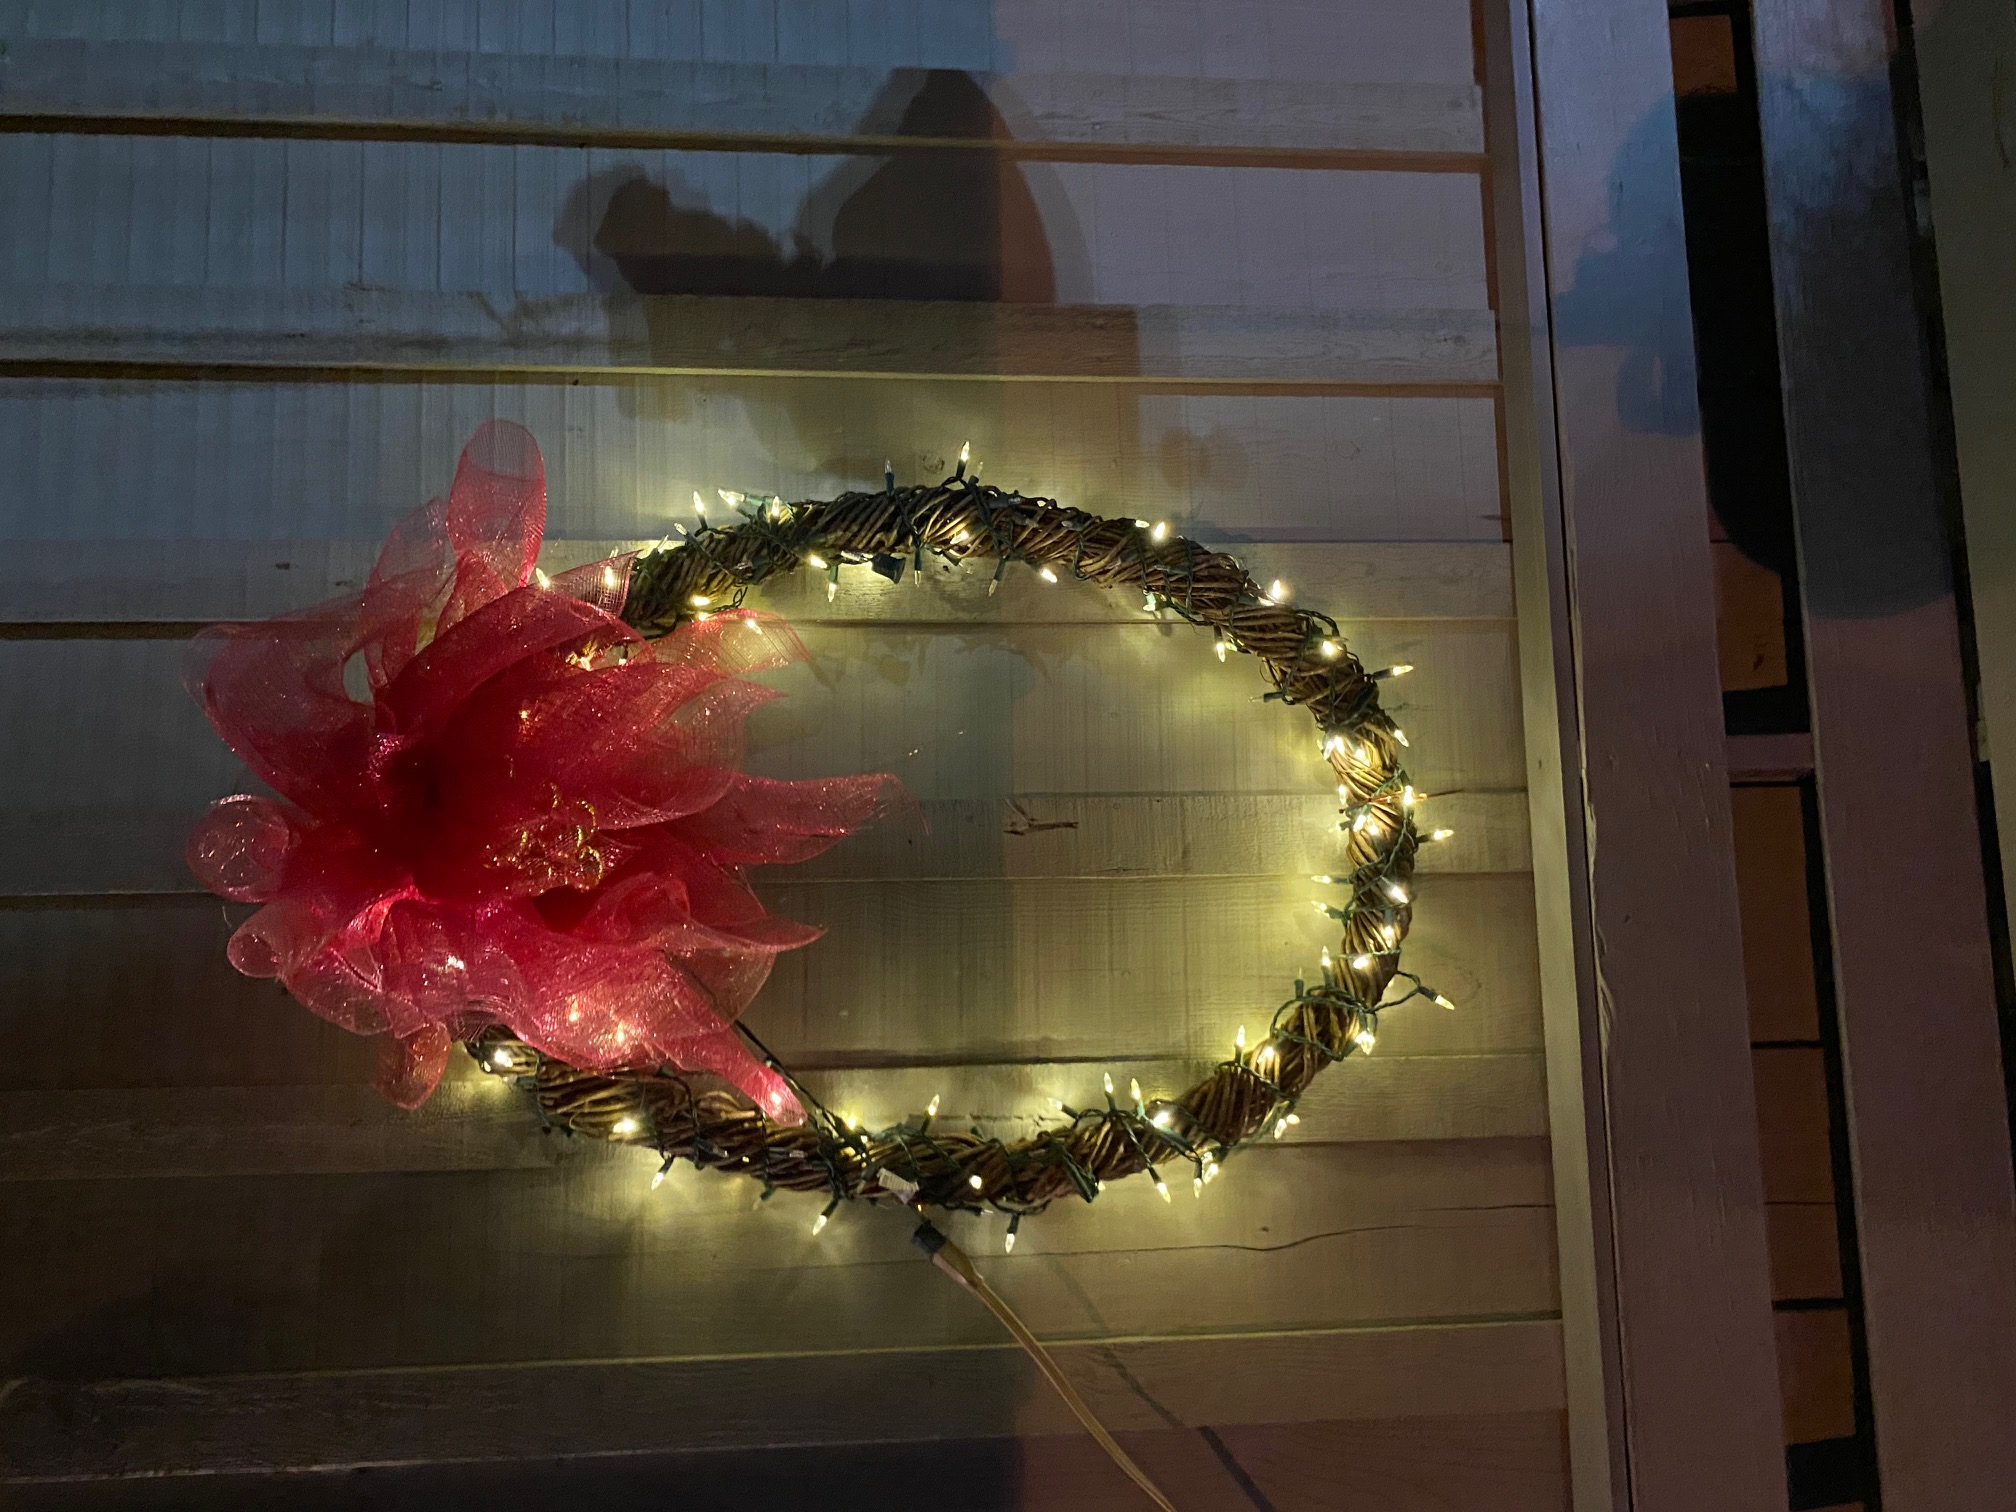 A lit wreath with red bow.